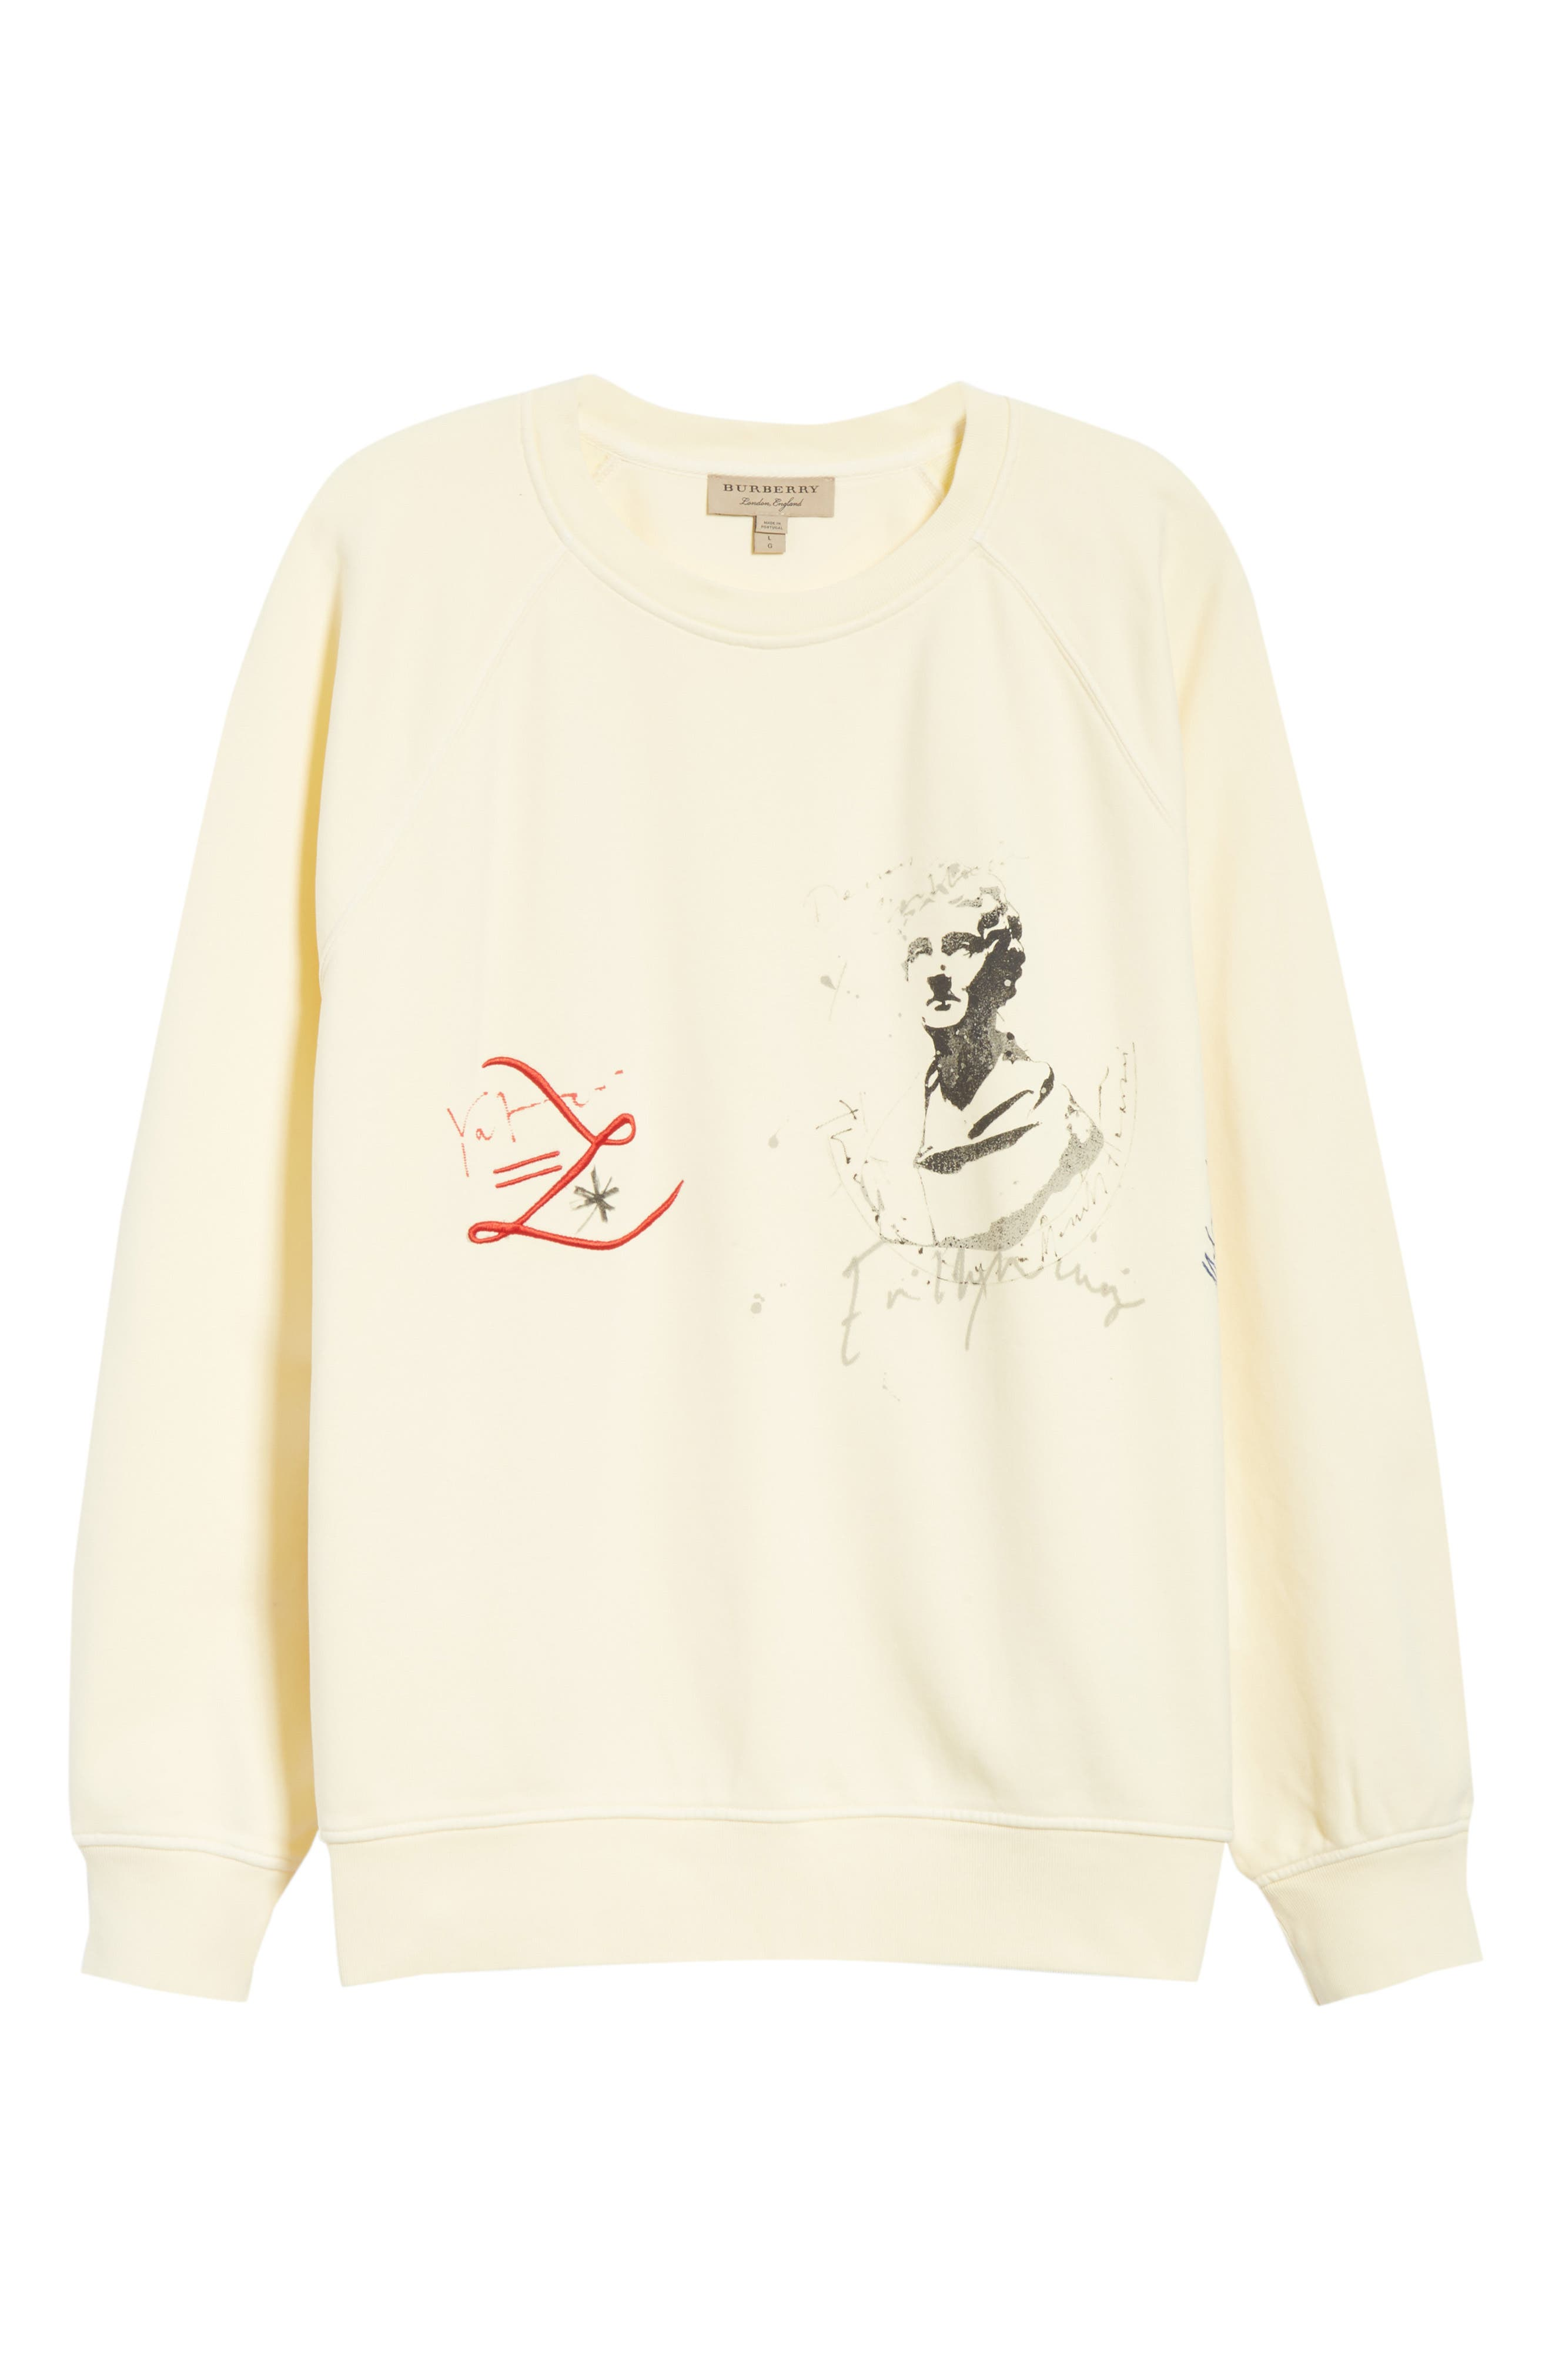 Earlford Graphic Sweatshirt,                             Alternate thumbnail 6, color,                             740